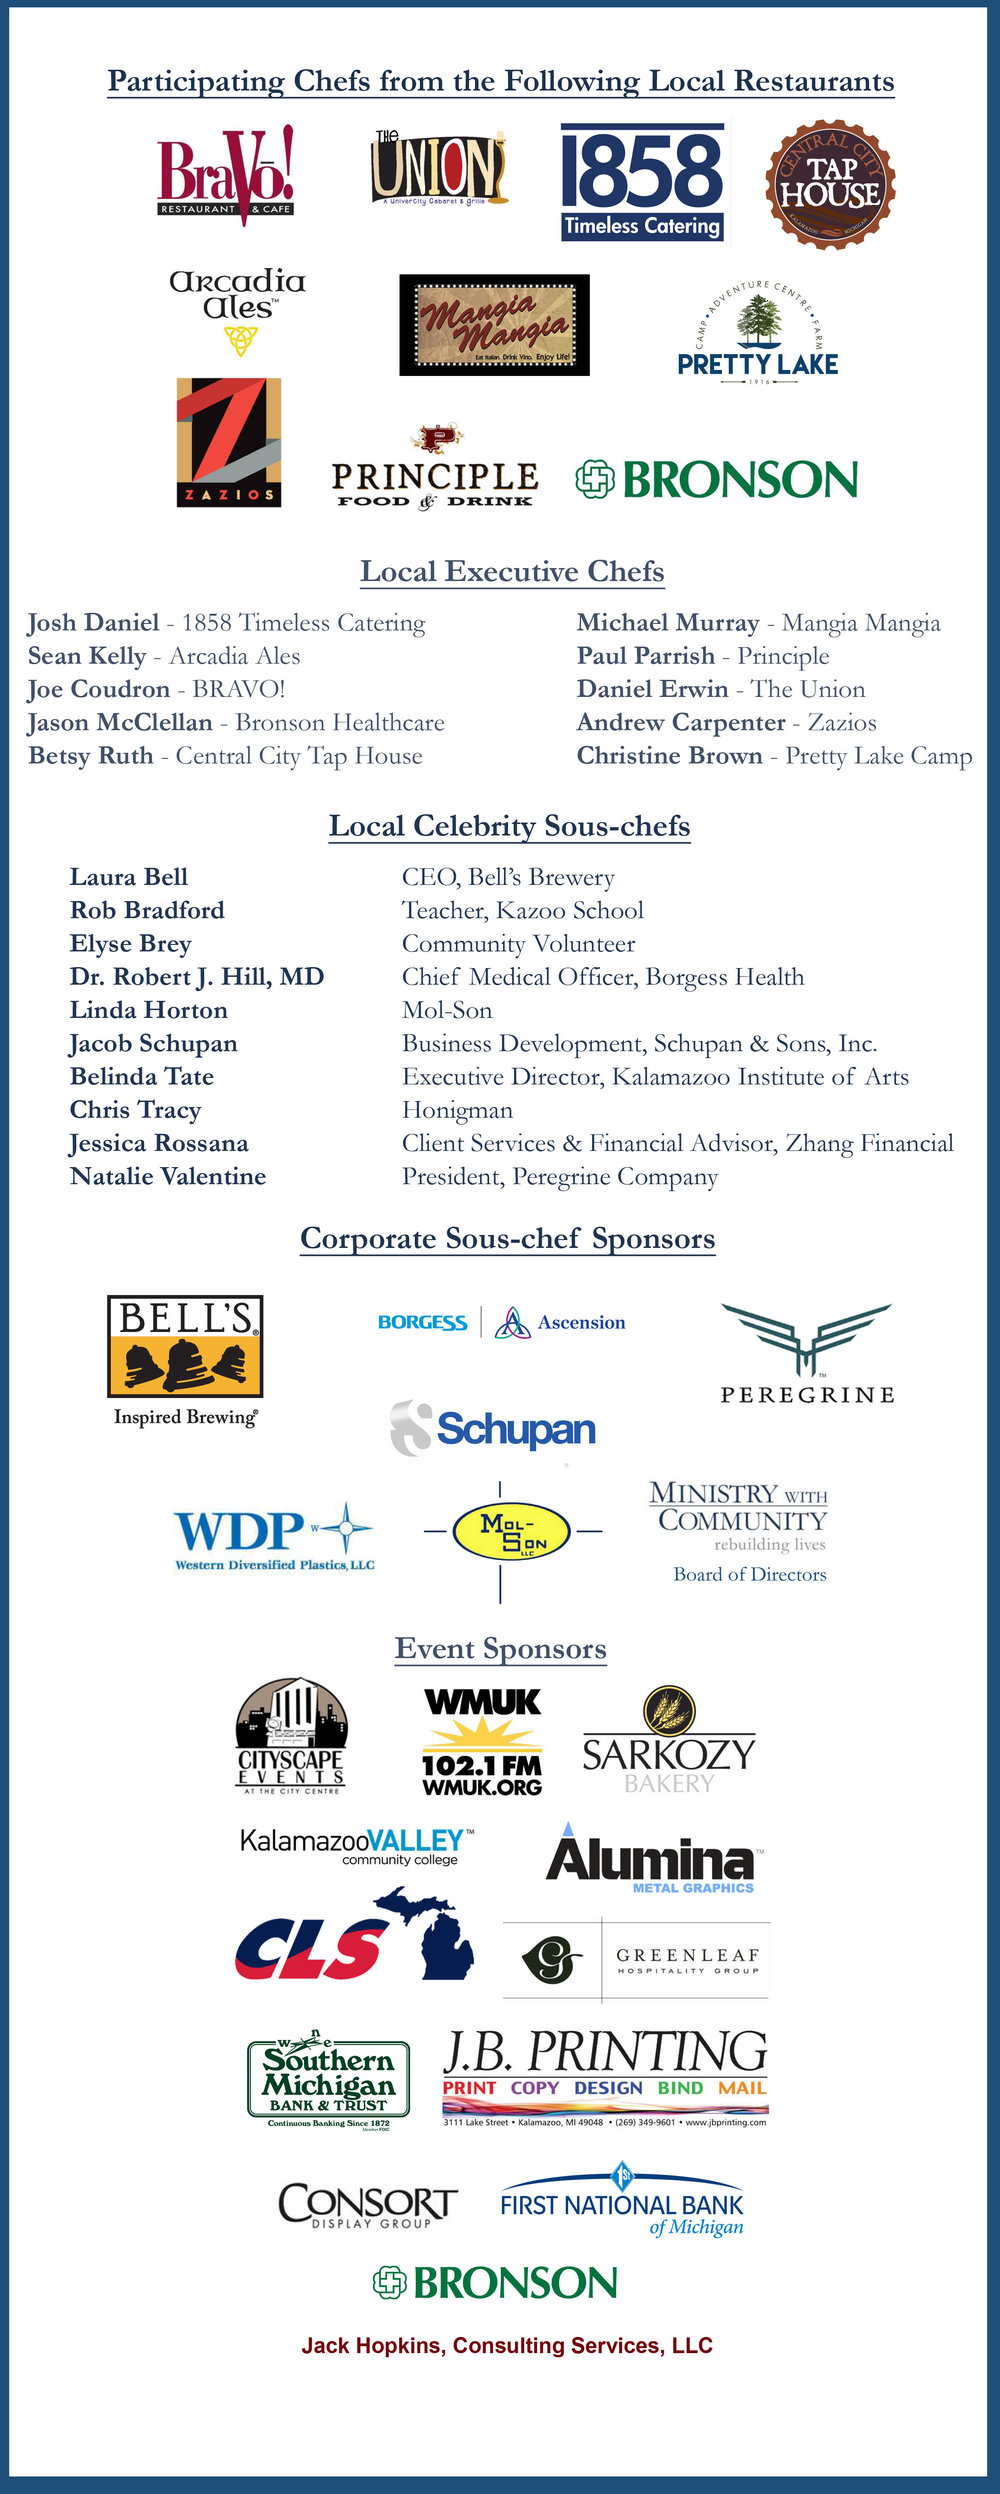 Thank you to all of our sponsors for making this event possible!